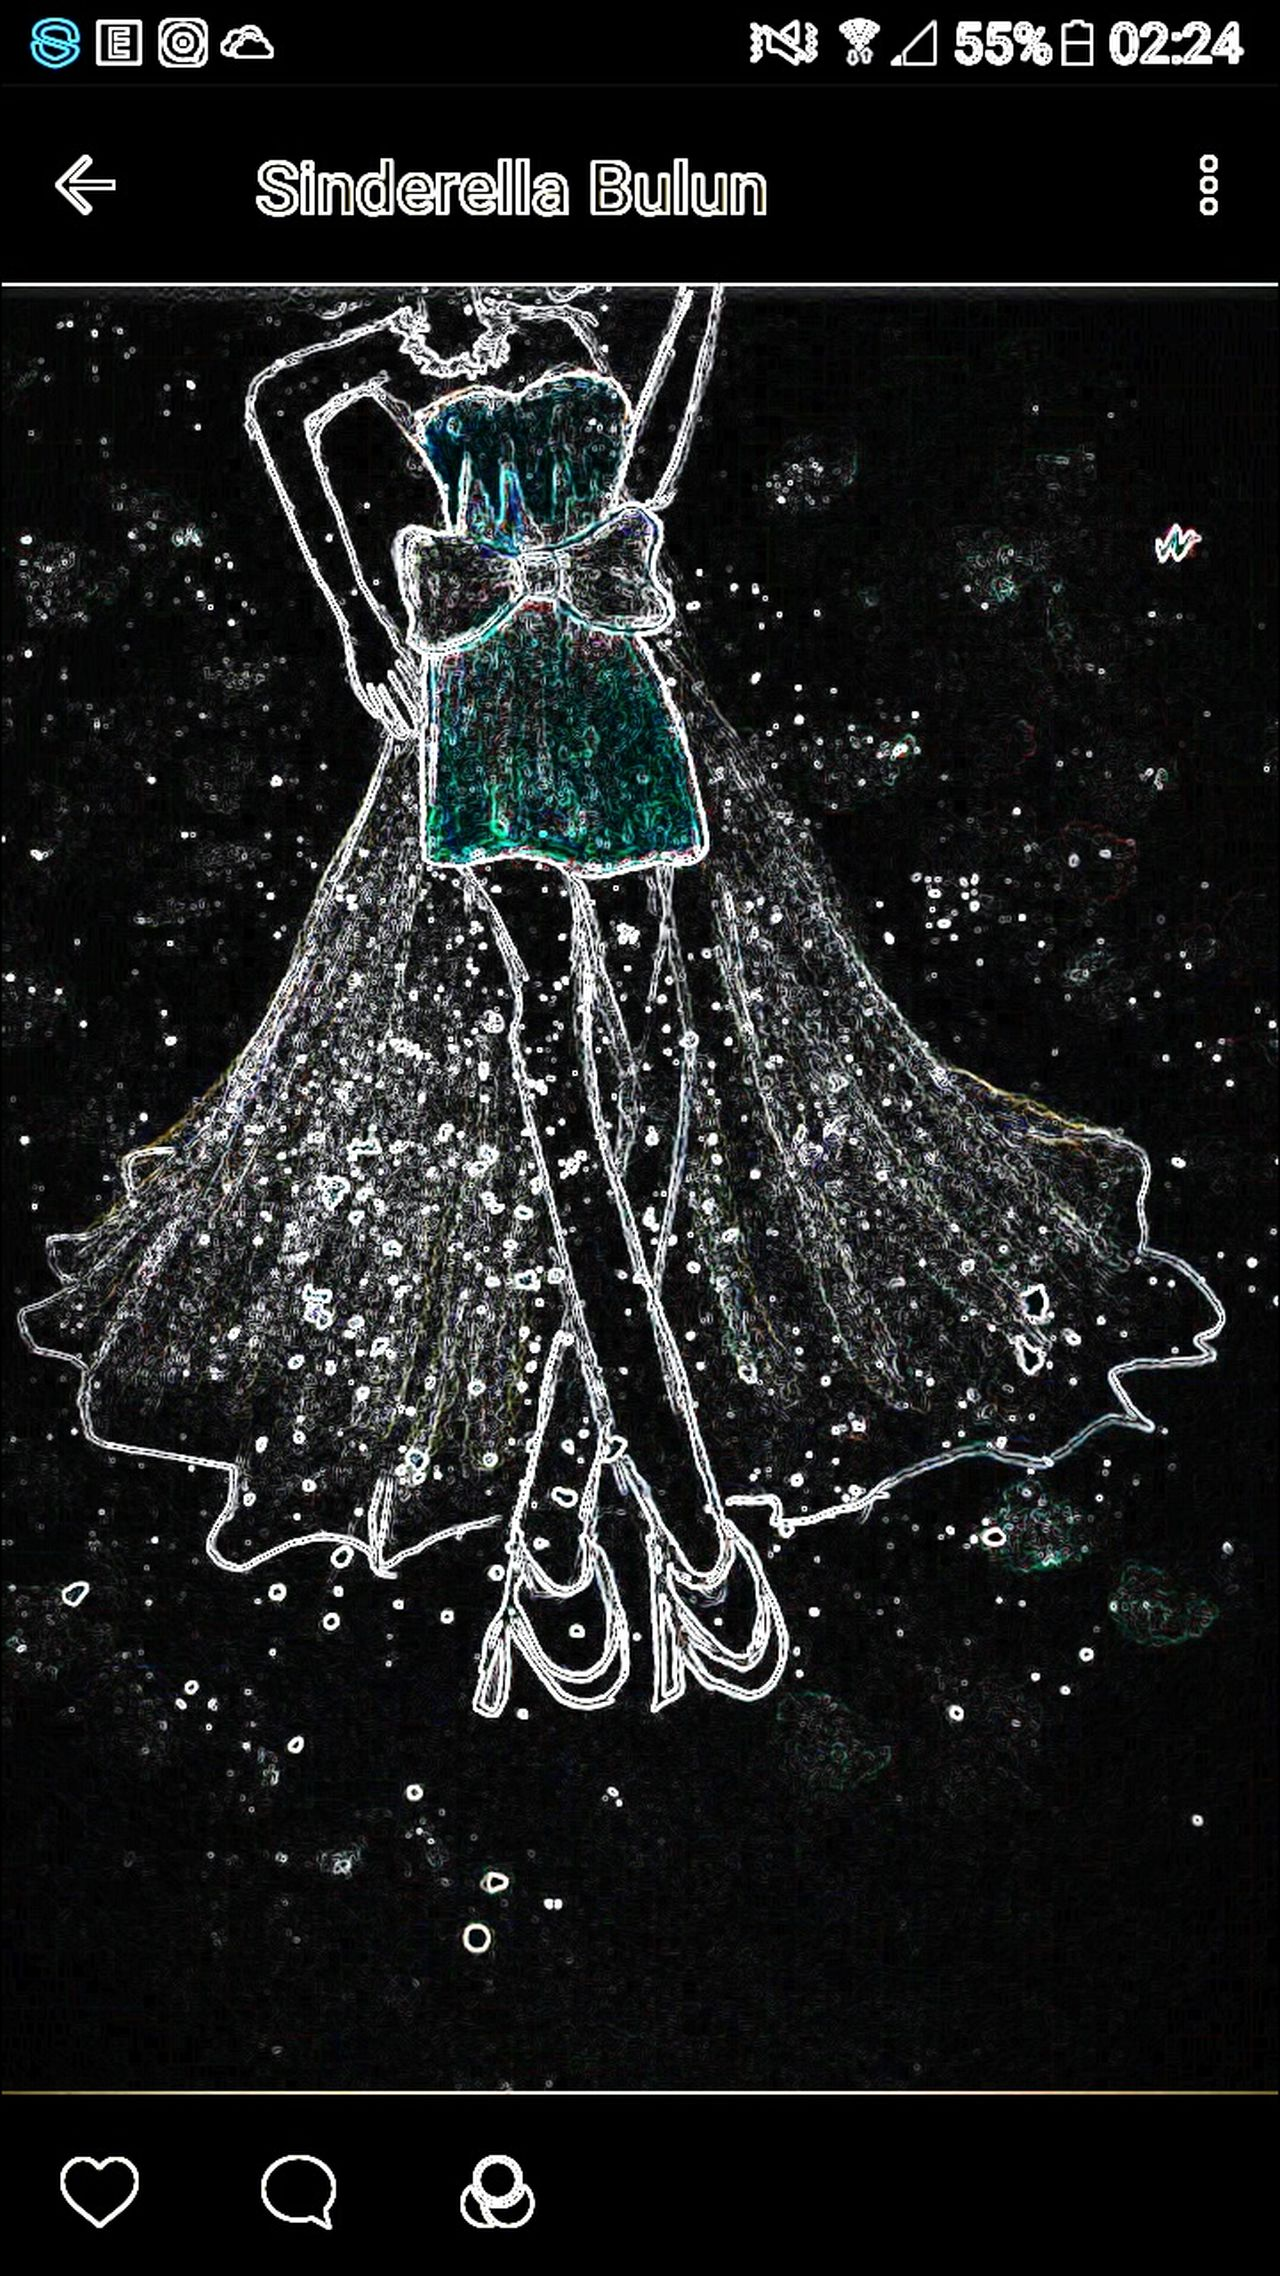 When dark come Fliter Details Textures And Shapes Creativity Dreamsinderella Dreamsinderelladesign Green Color Galaxy Starlight Galaxydress Mydesign Fashion Studio Shot Night Close-up Design